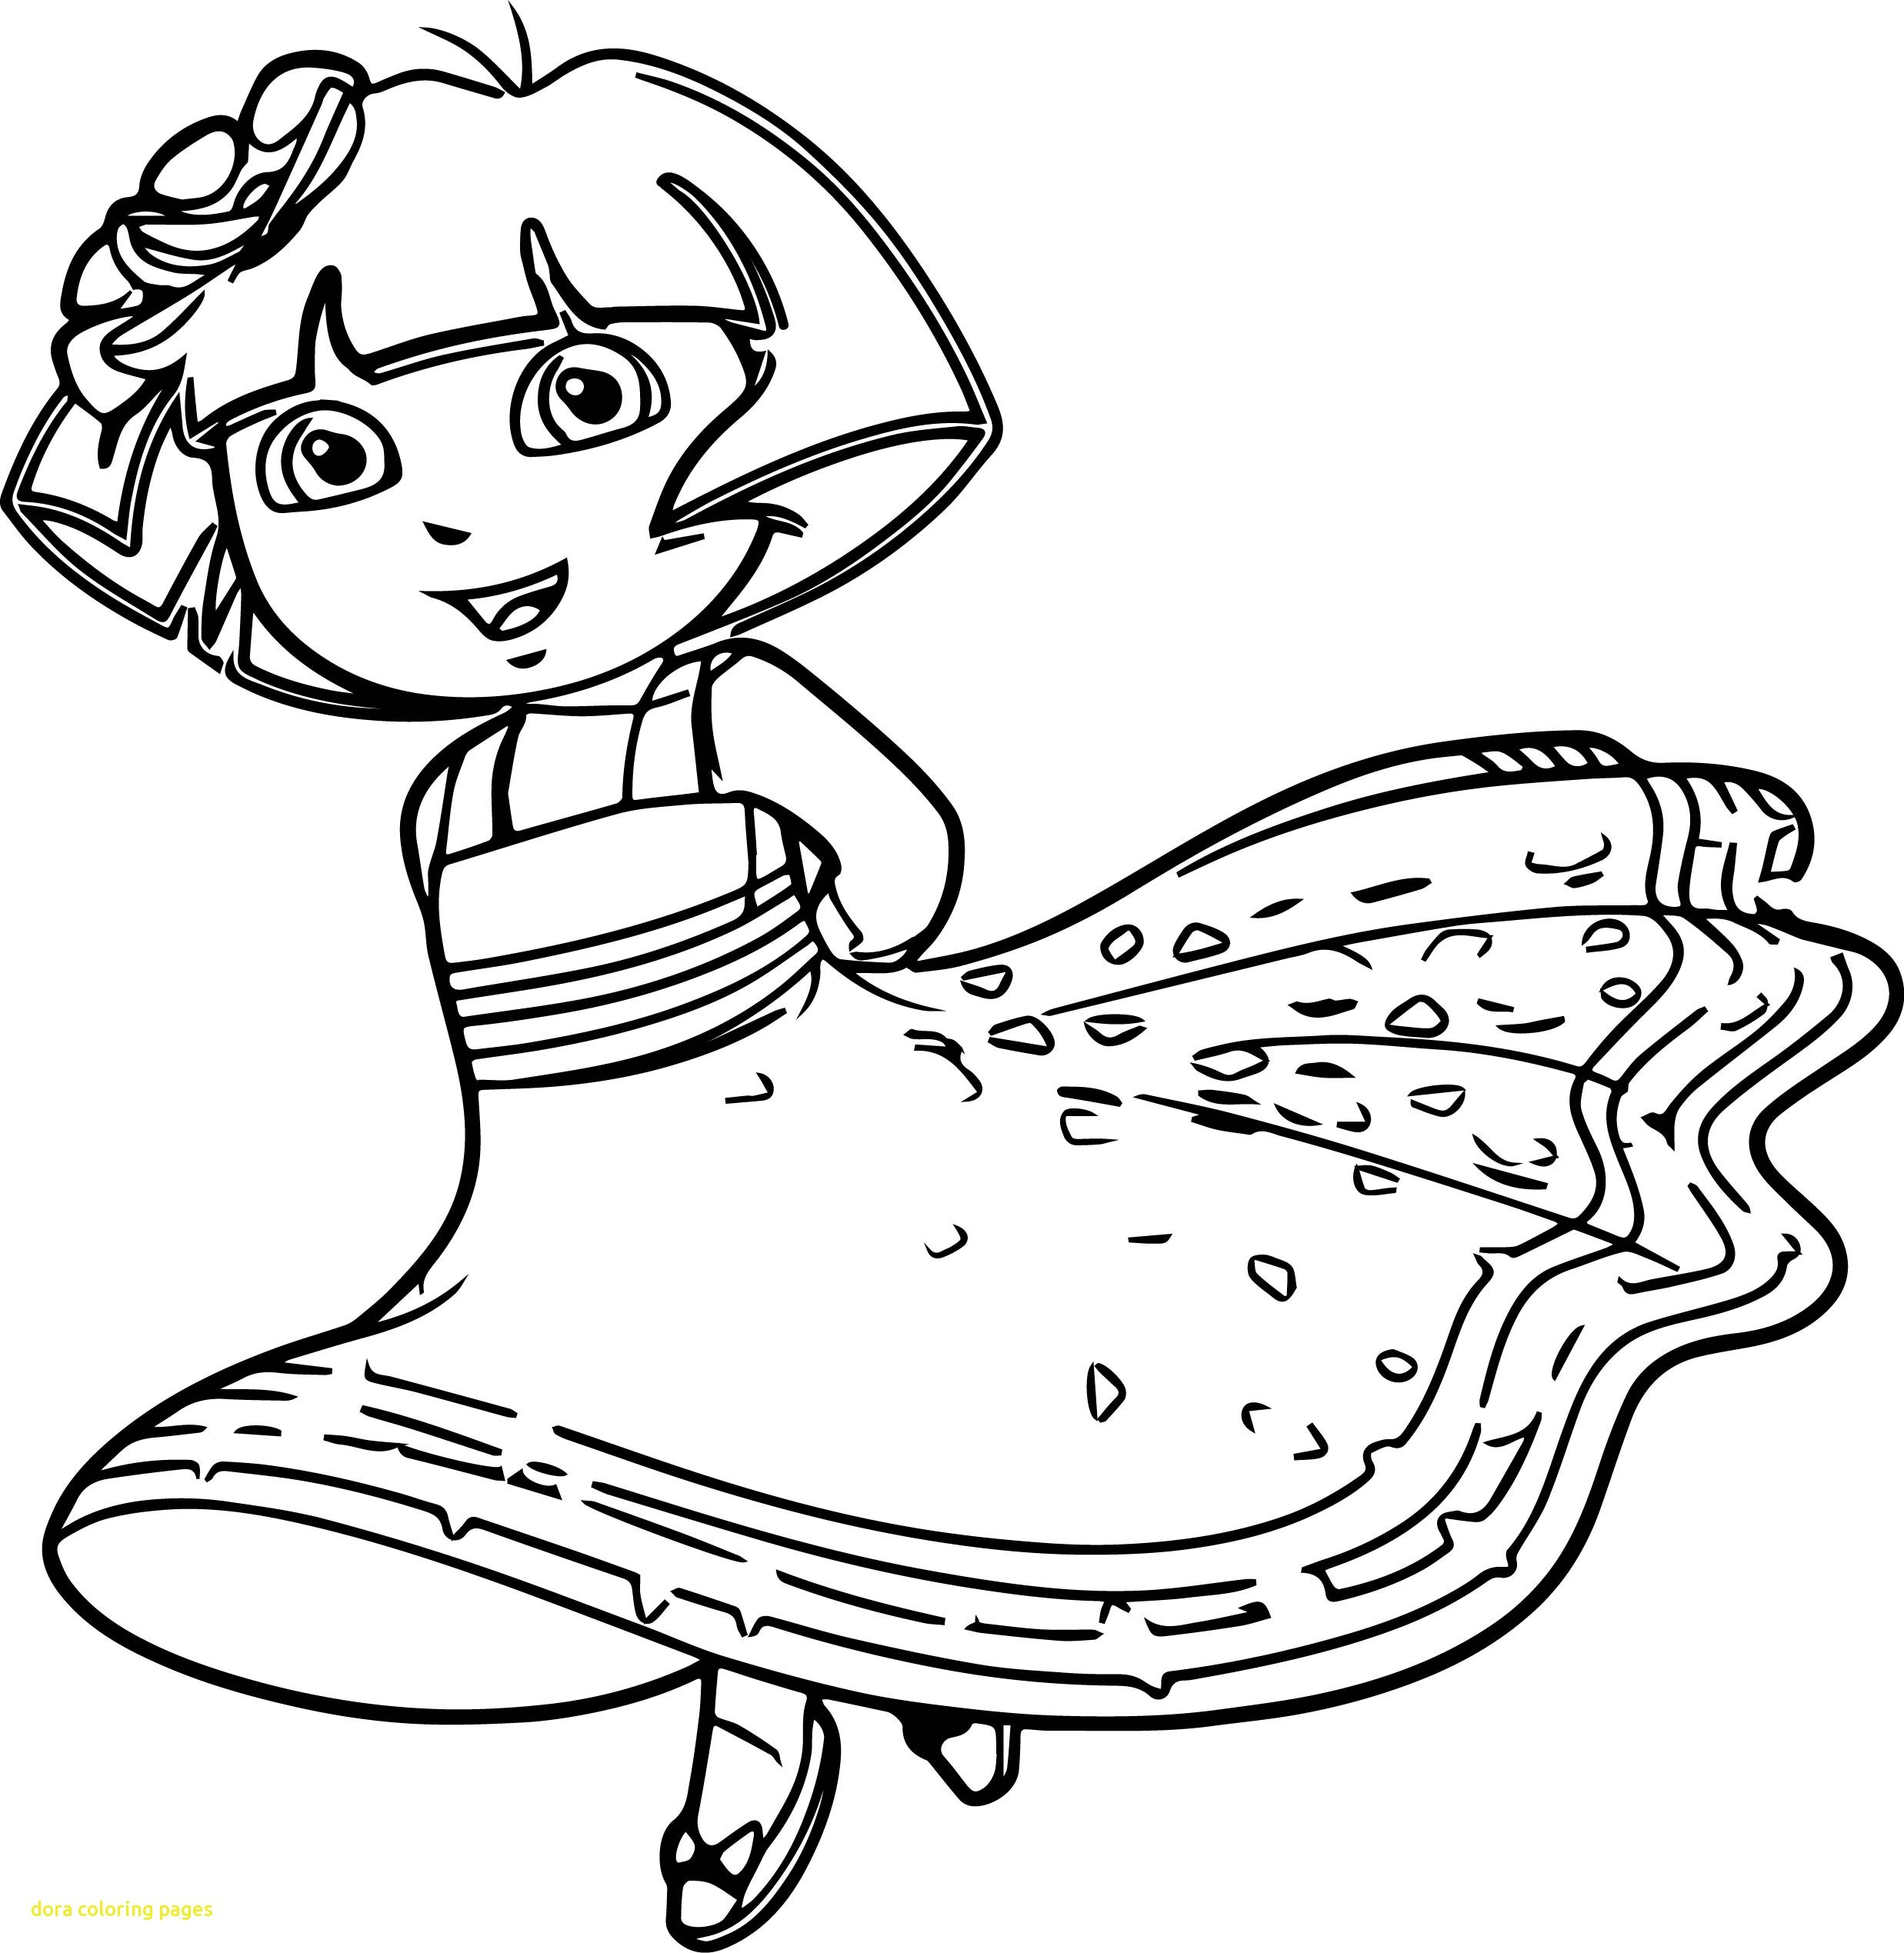 pictures of dora to color dora drawing at getdrawings free download to dora pictures of color